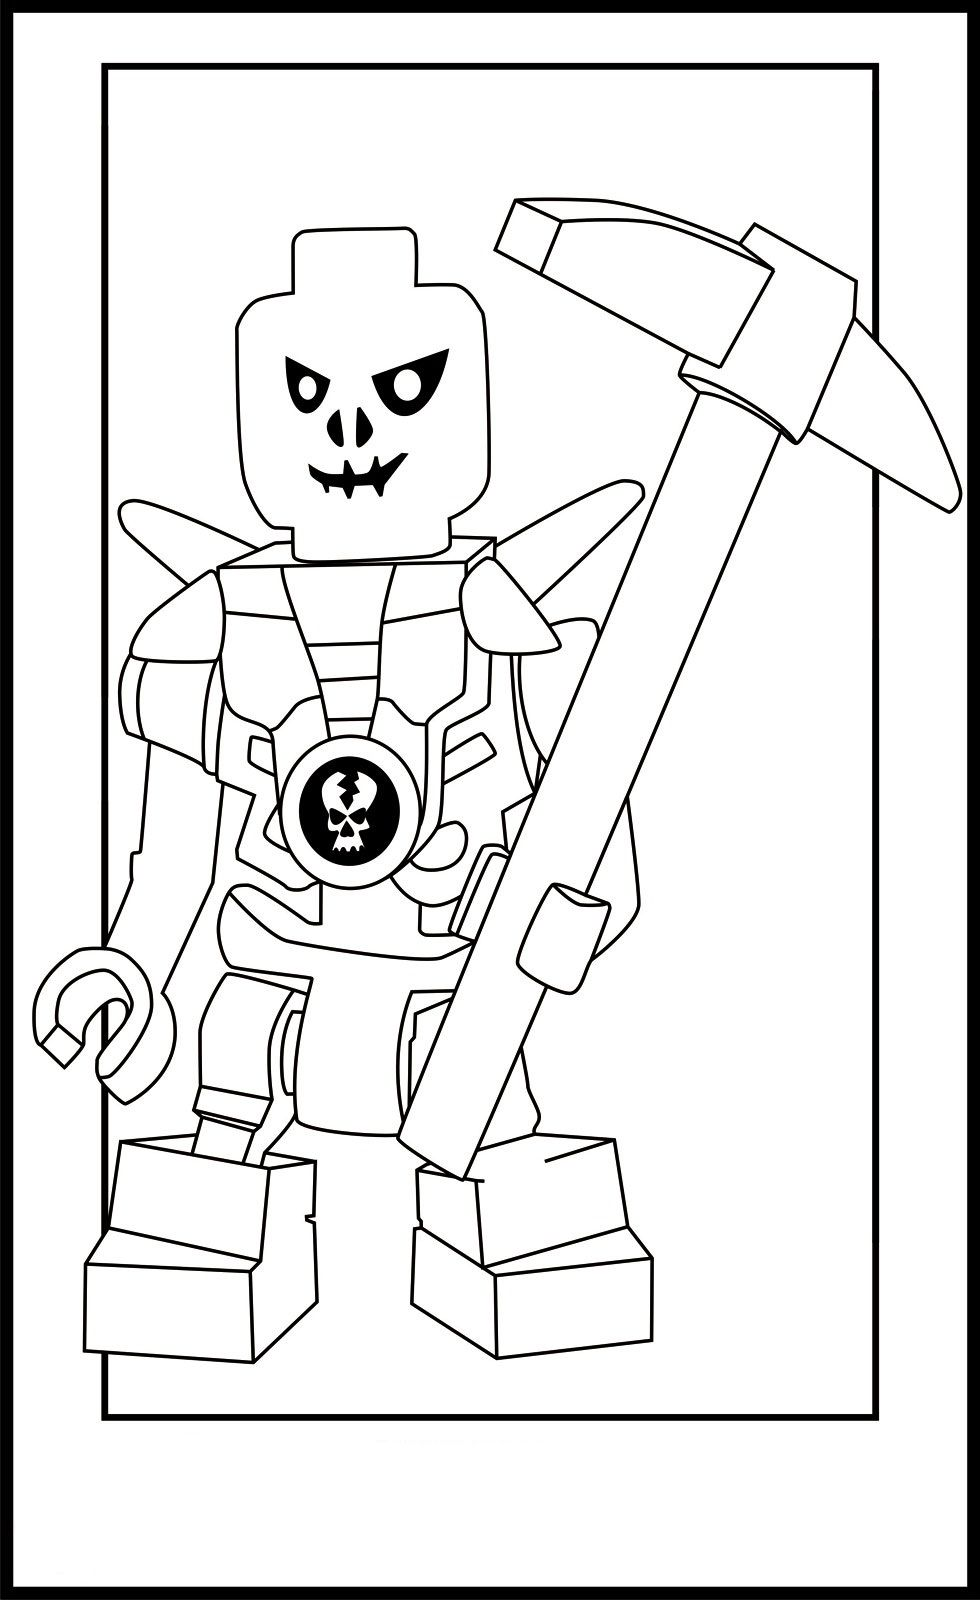 Ninjago-Lego-Coloring-Pages.jpg (980×1600) | party ideas | Pinterest